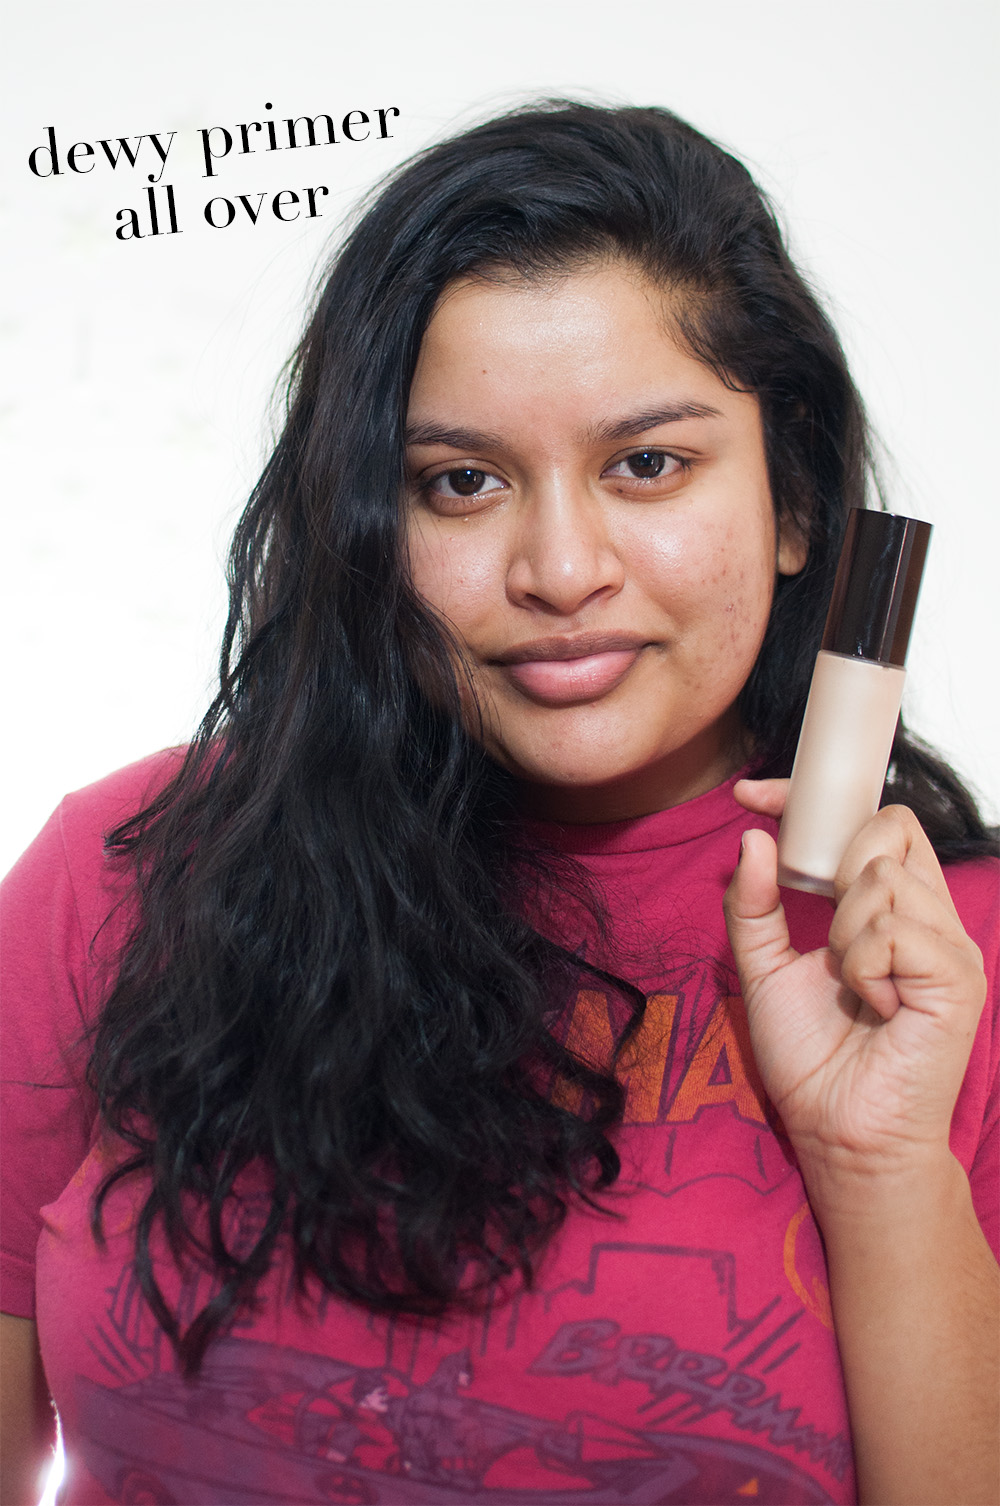 Maybelline Dream Cushion Fresh Face Liquid Foundation On-the-Go review, Maybelline Dream Cushion Fresh Face Liquid Foundation On-the-Go wear test